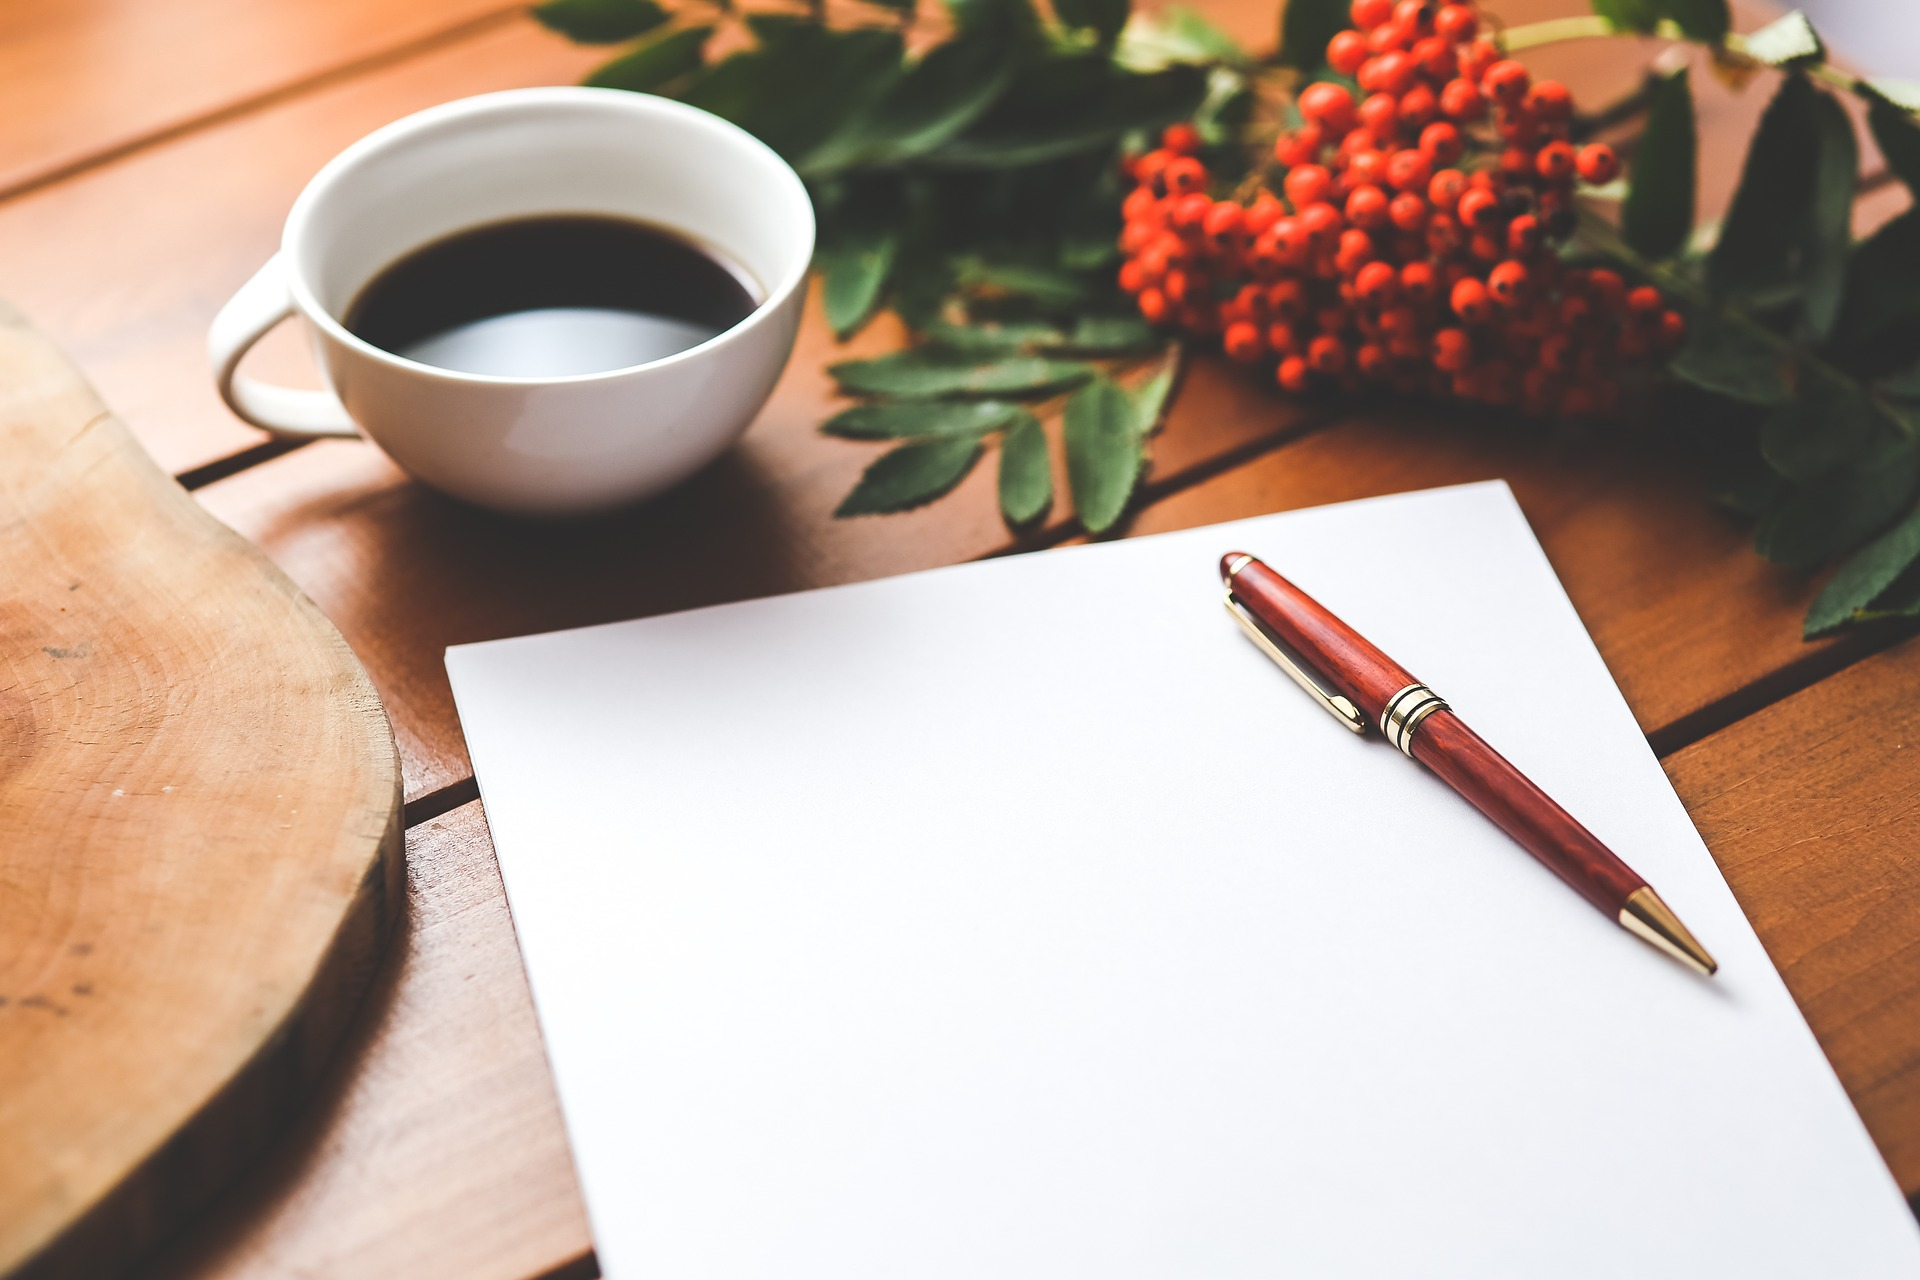 coffee, white paper, pen, and red berries on wooden table. Photo by Karolina Gabrowska on Pixabay